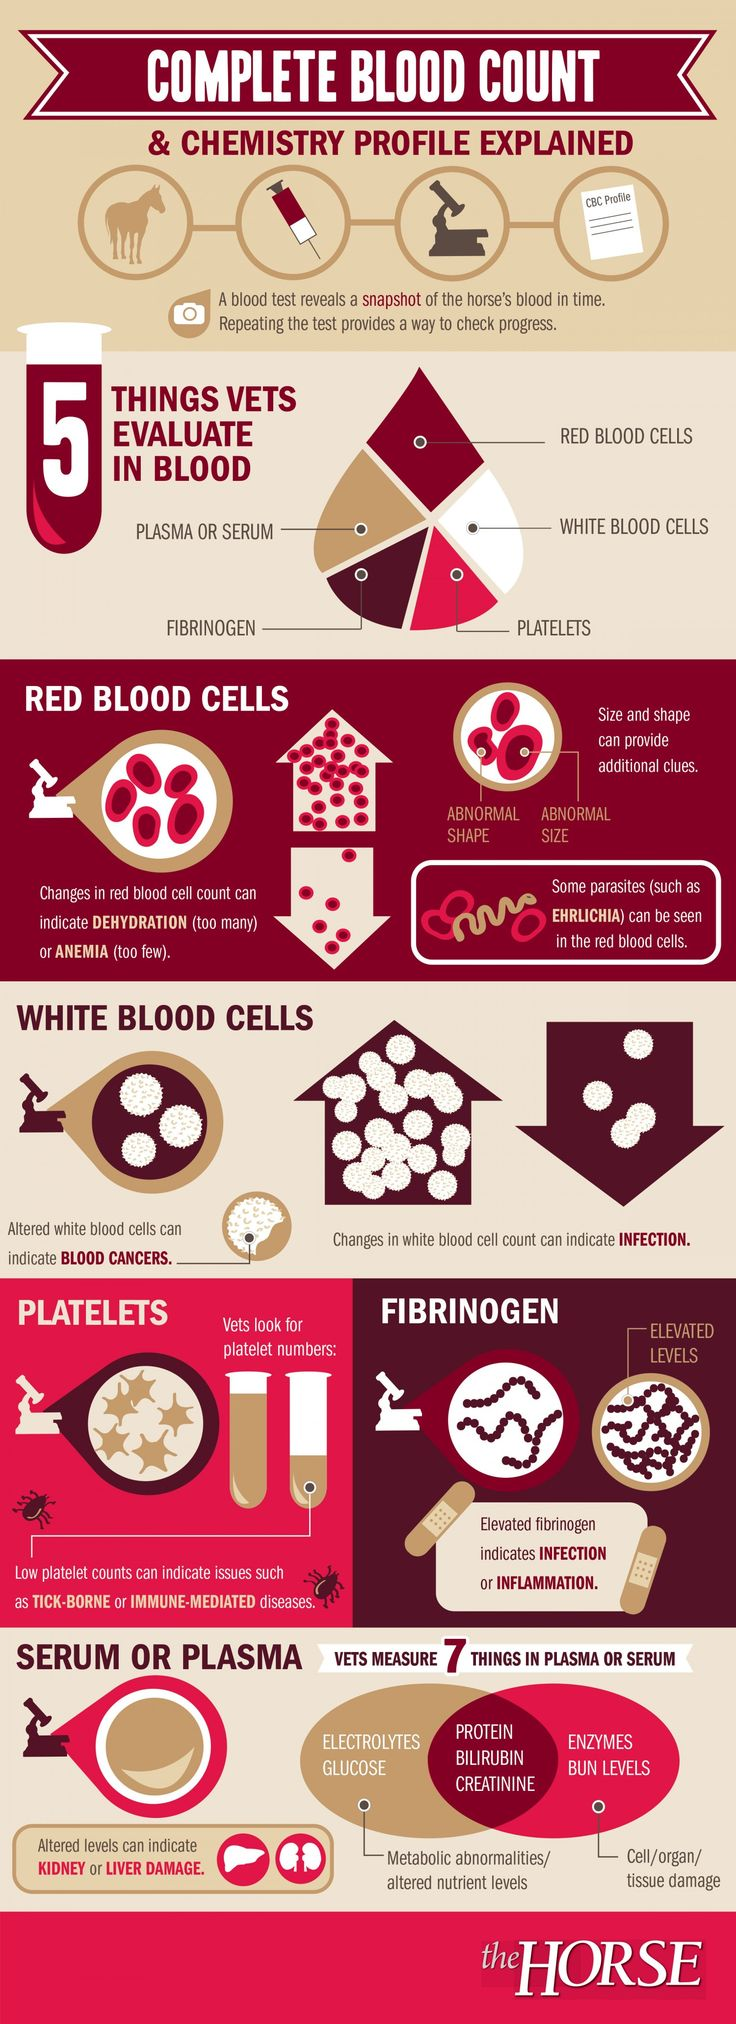 Complete Blood Count and Chemistry Profile Explained Infographic